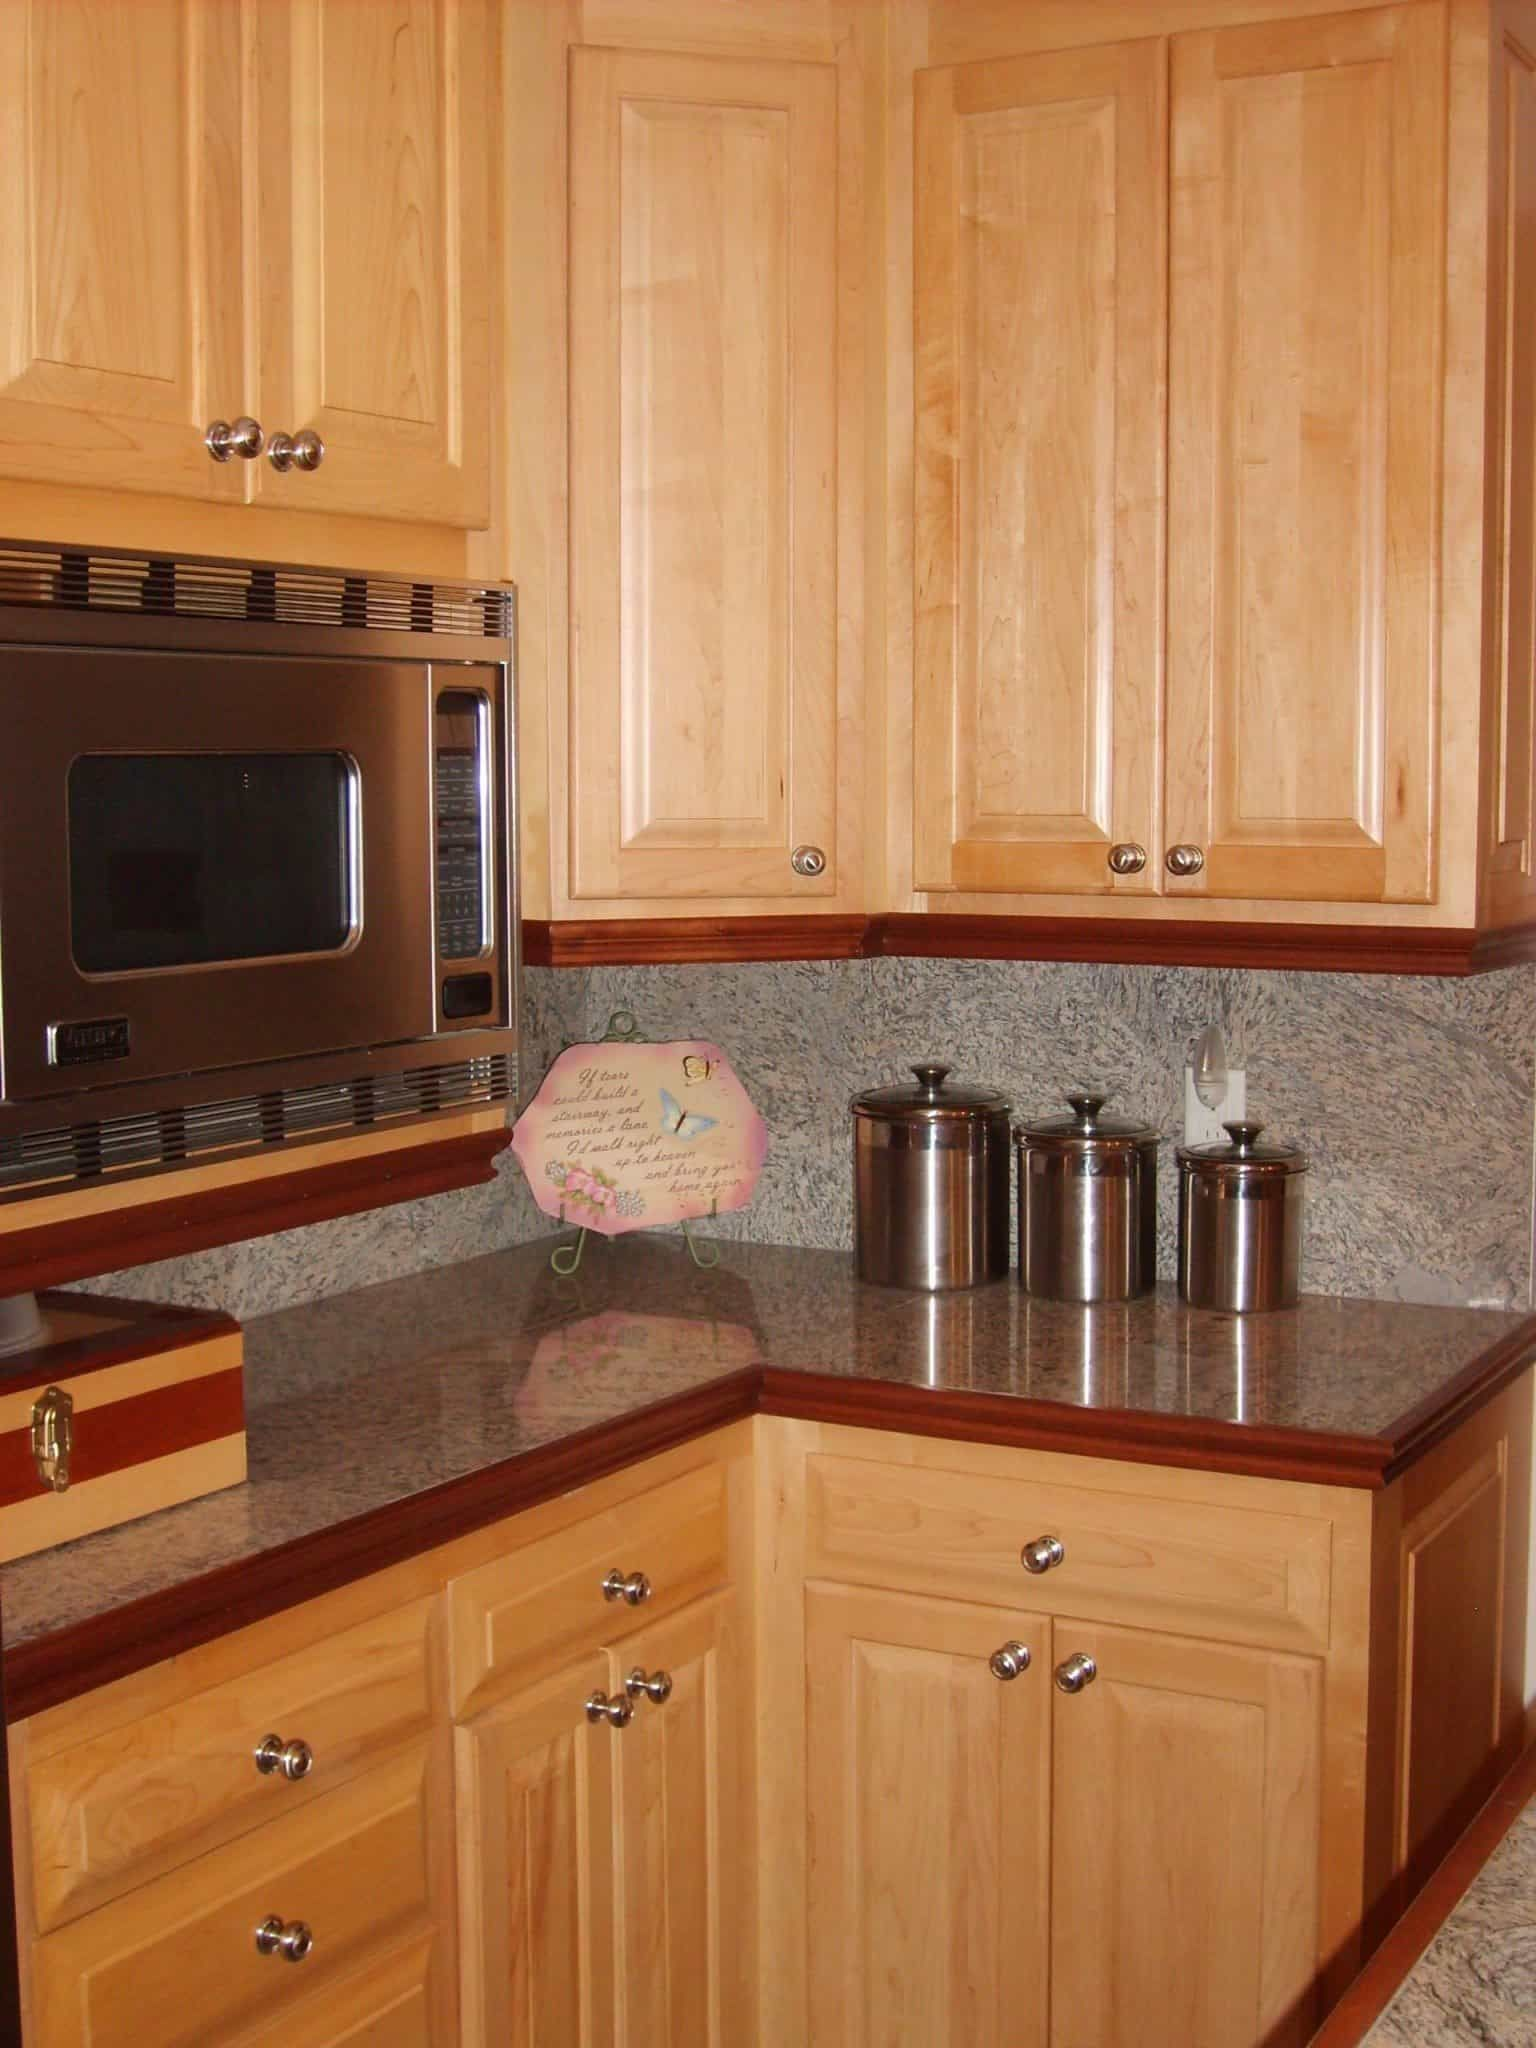 splendid maple cabinets for the kitchens in 2020 maple kitchen cabinets maple cabinets wood on kitchen cabinets natural wood id=50115